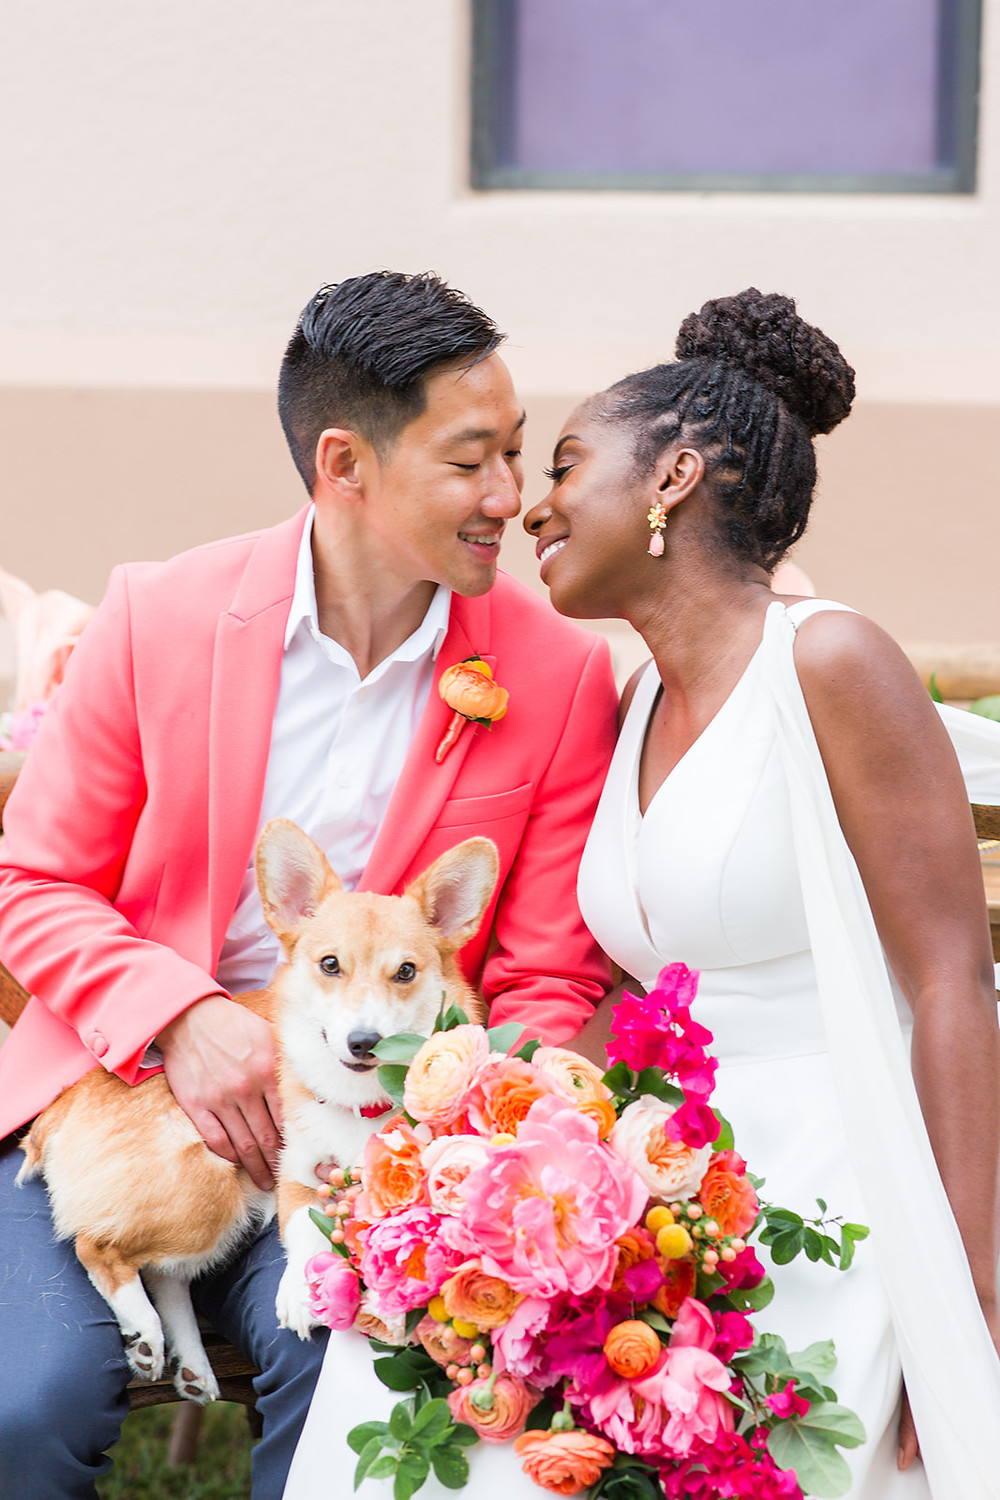 Bride and groom smiling at each other with their corgi.